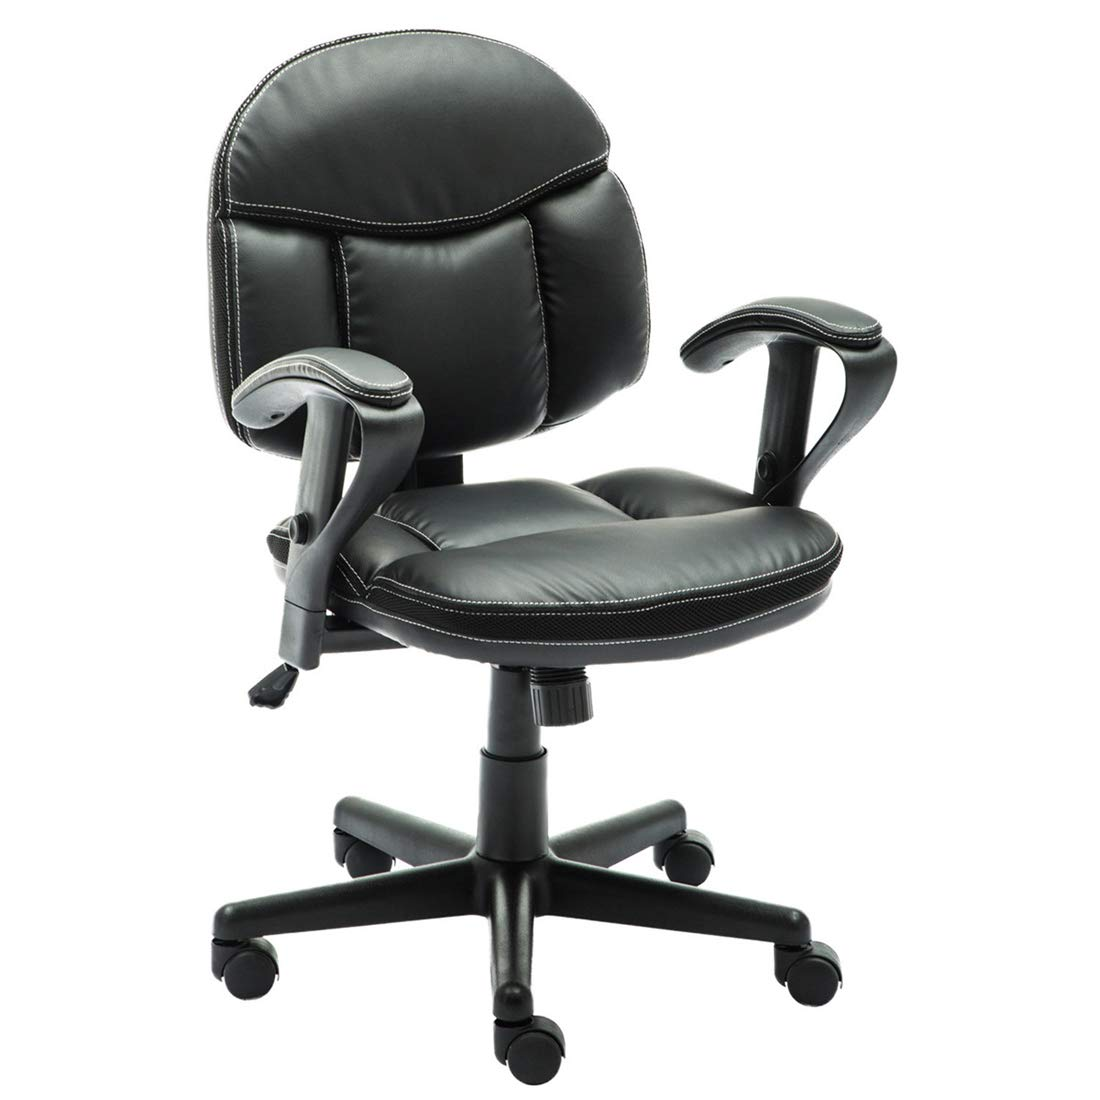 Irene House Comfortable Adult Teen's Swivel Adjustable PU Desk Chair,Ergonomic Mid-Back Student Computer Task Chair,Medium Adult's Home Office Chair(Black) by Irene House (Image #1)